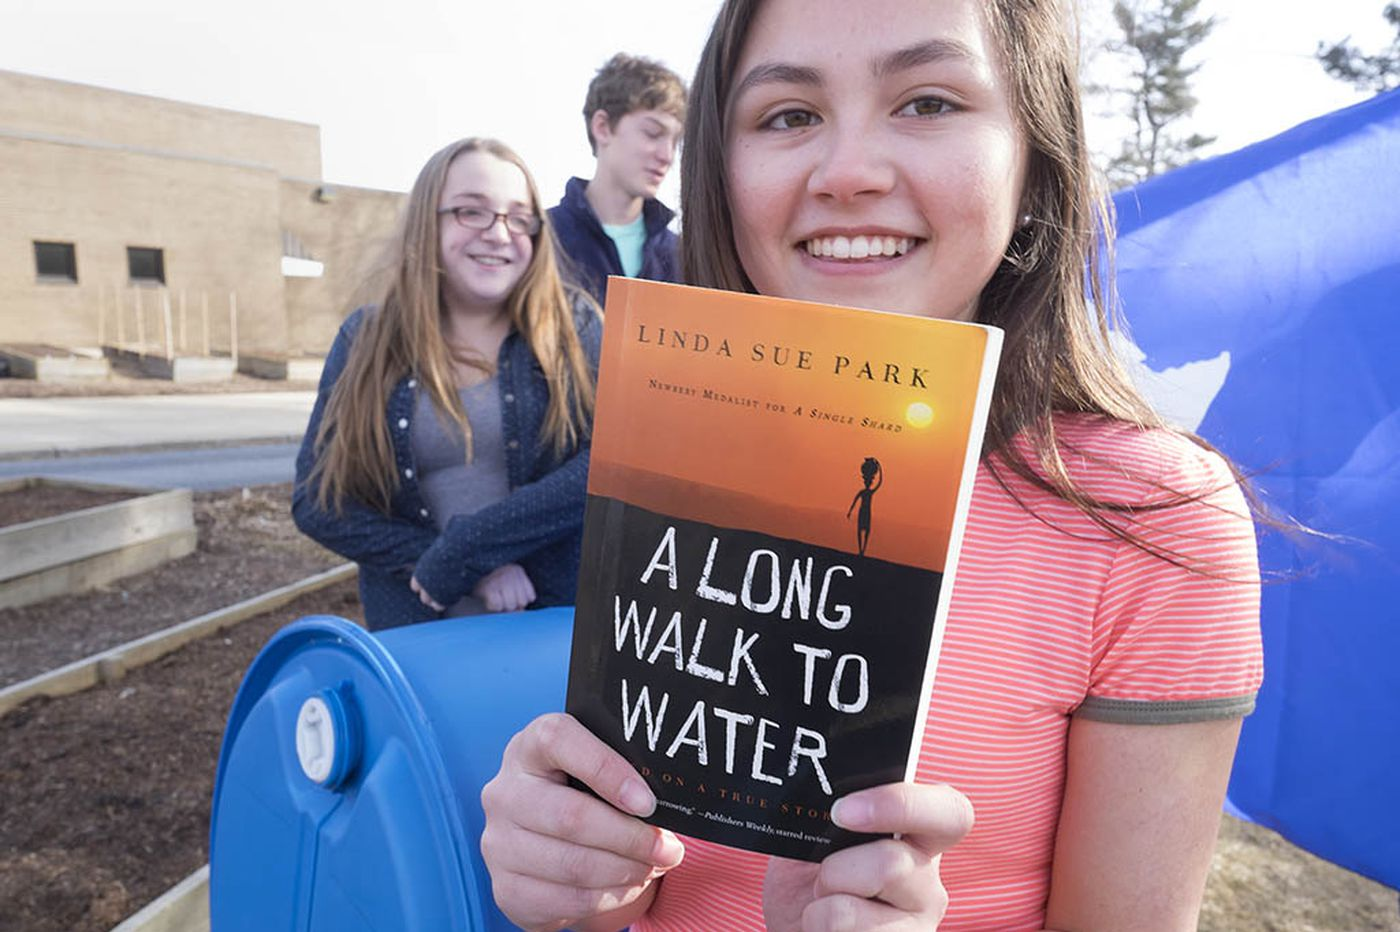 Schools raise money to help others get clean water